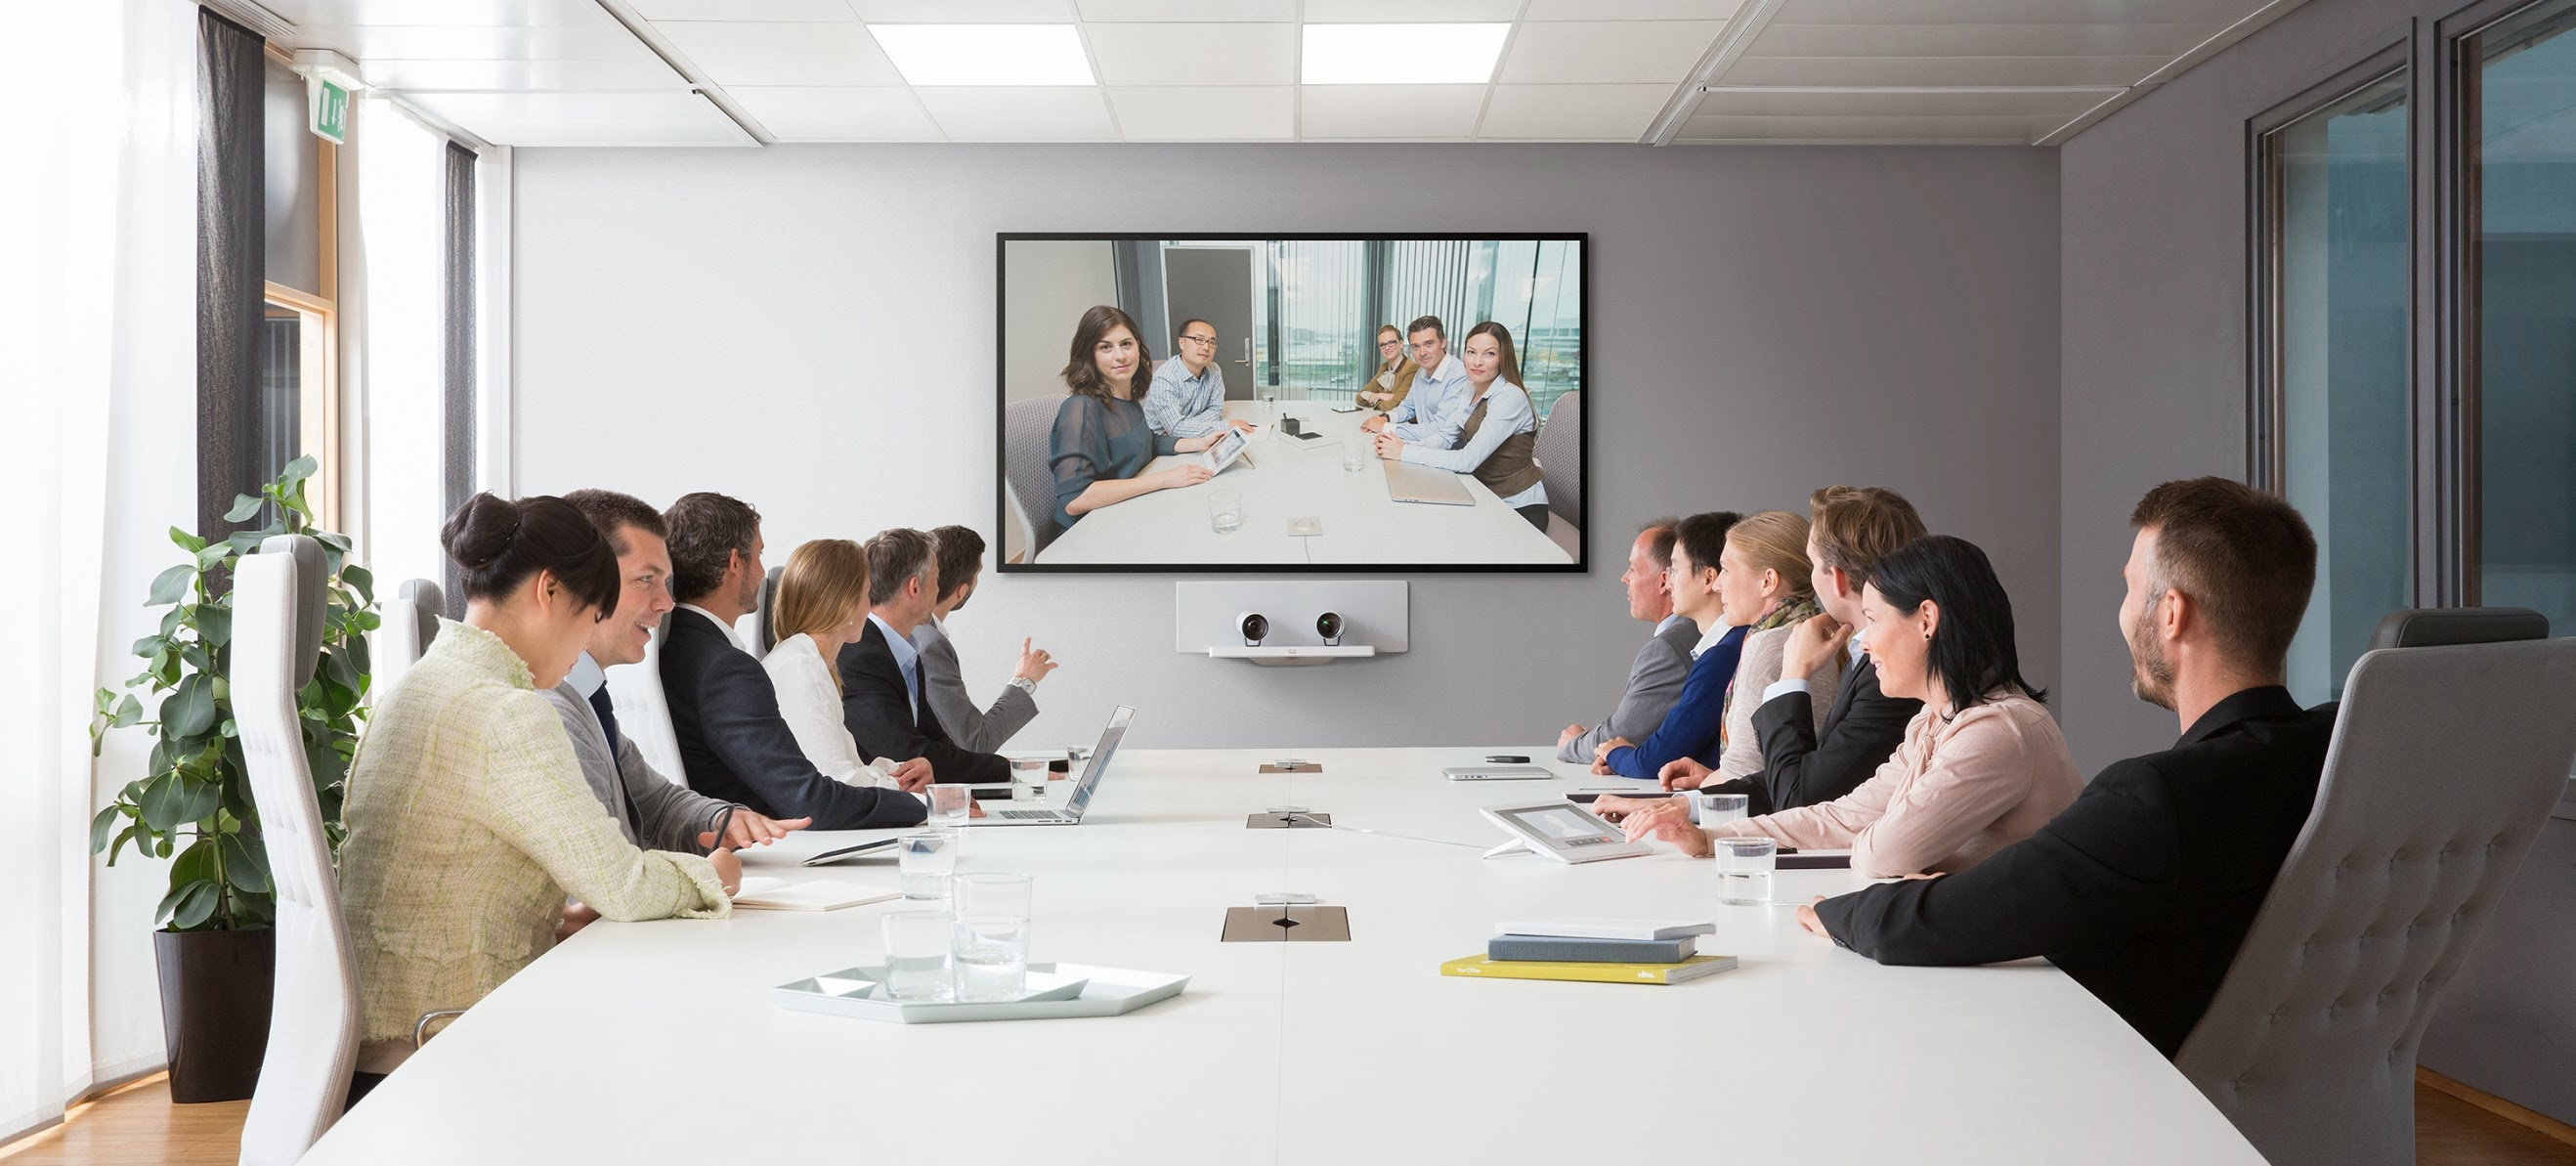 Benefits Of IT Ecosystem Integration and Video Discoverability For Corporates